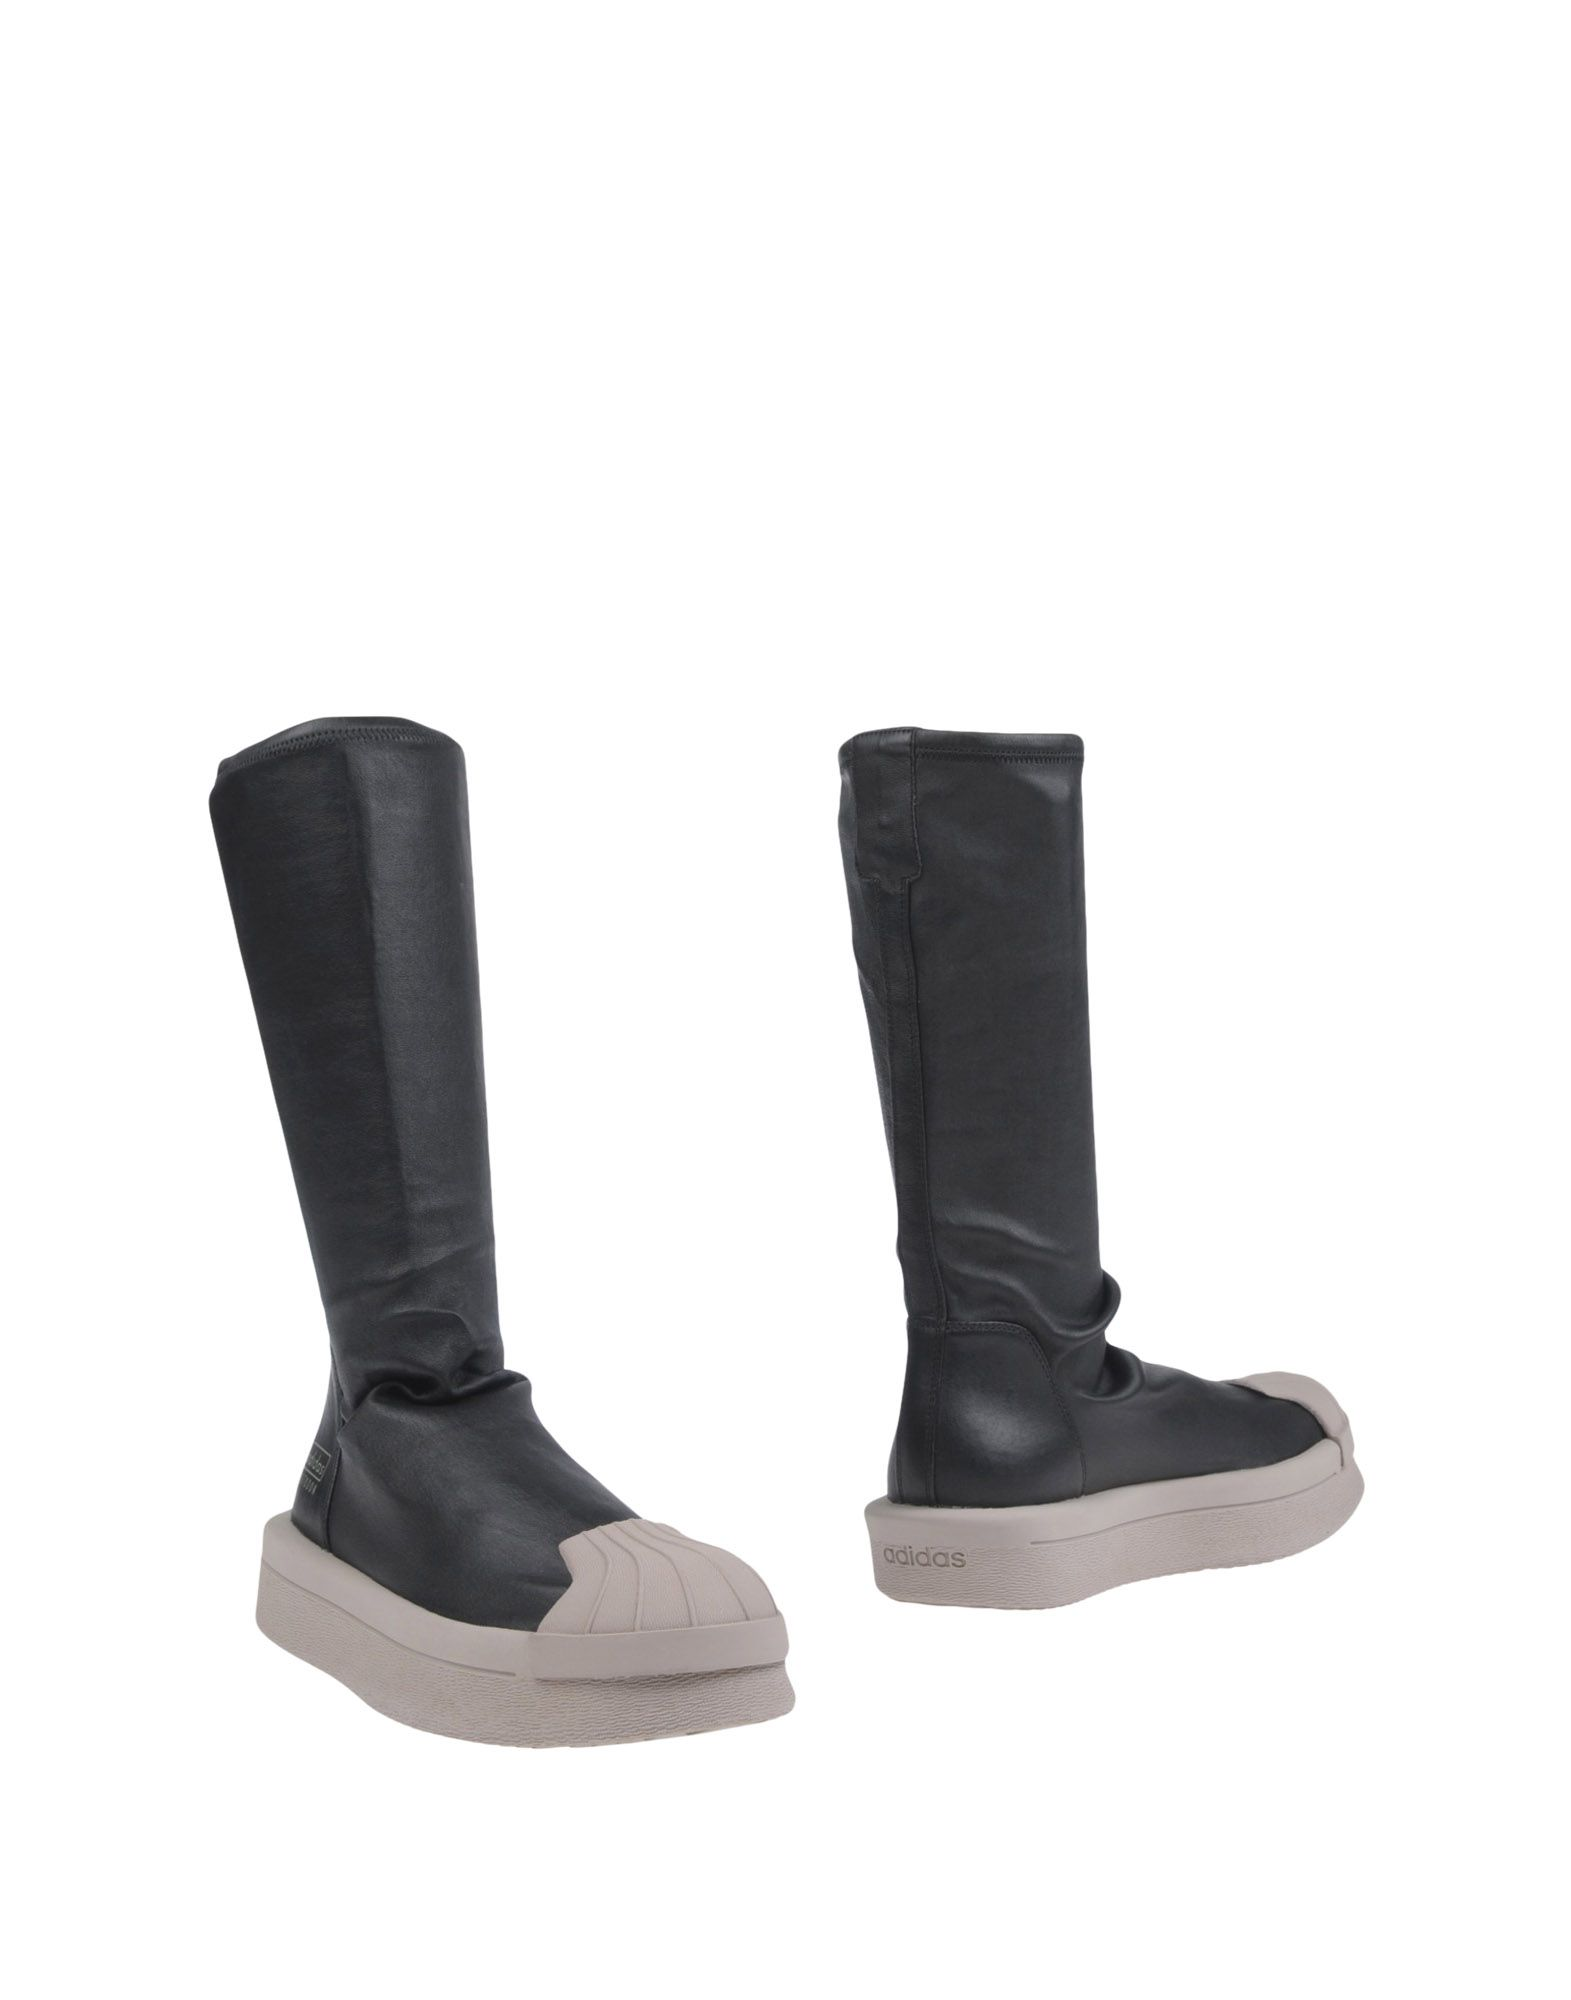 ADIDAS BY RICK OWENS Ankle Boots, Black